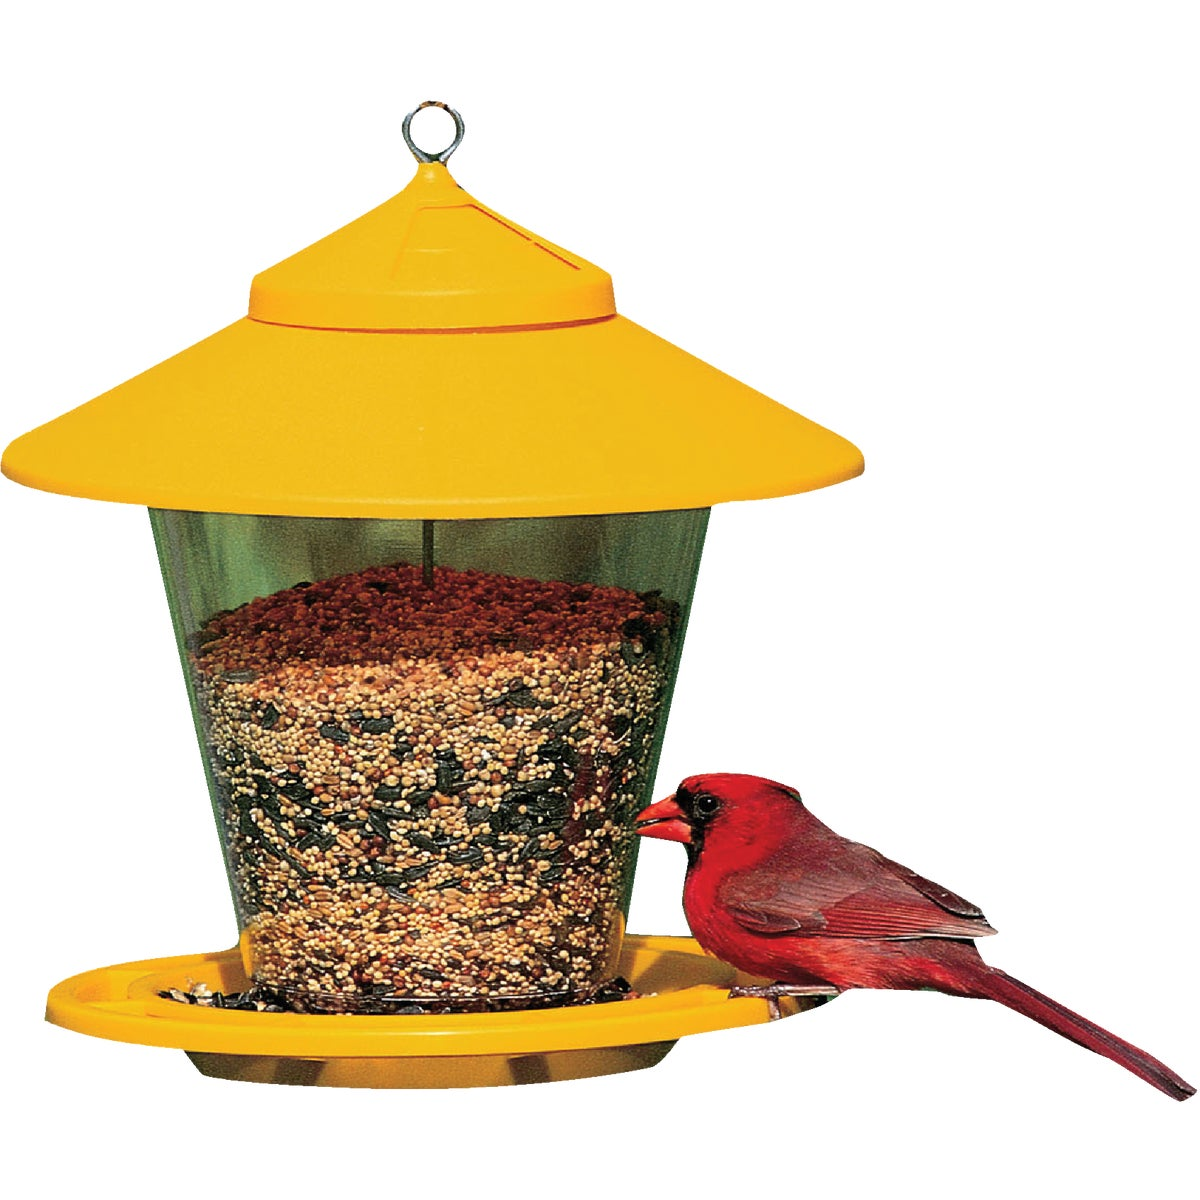 GRANARY BIRD FEEDER - NA6231 by Kay Home Products